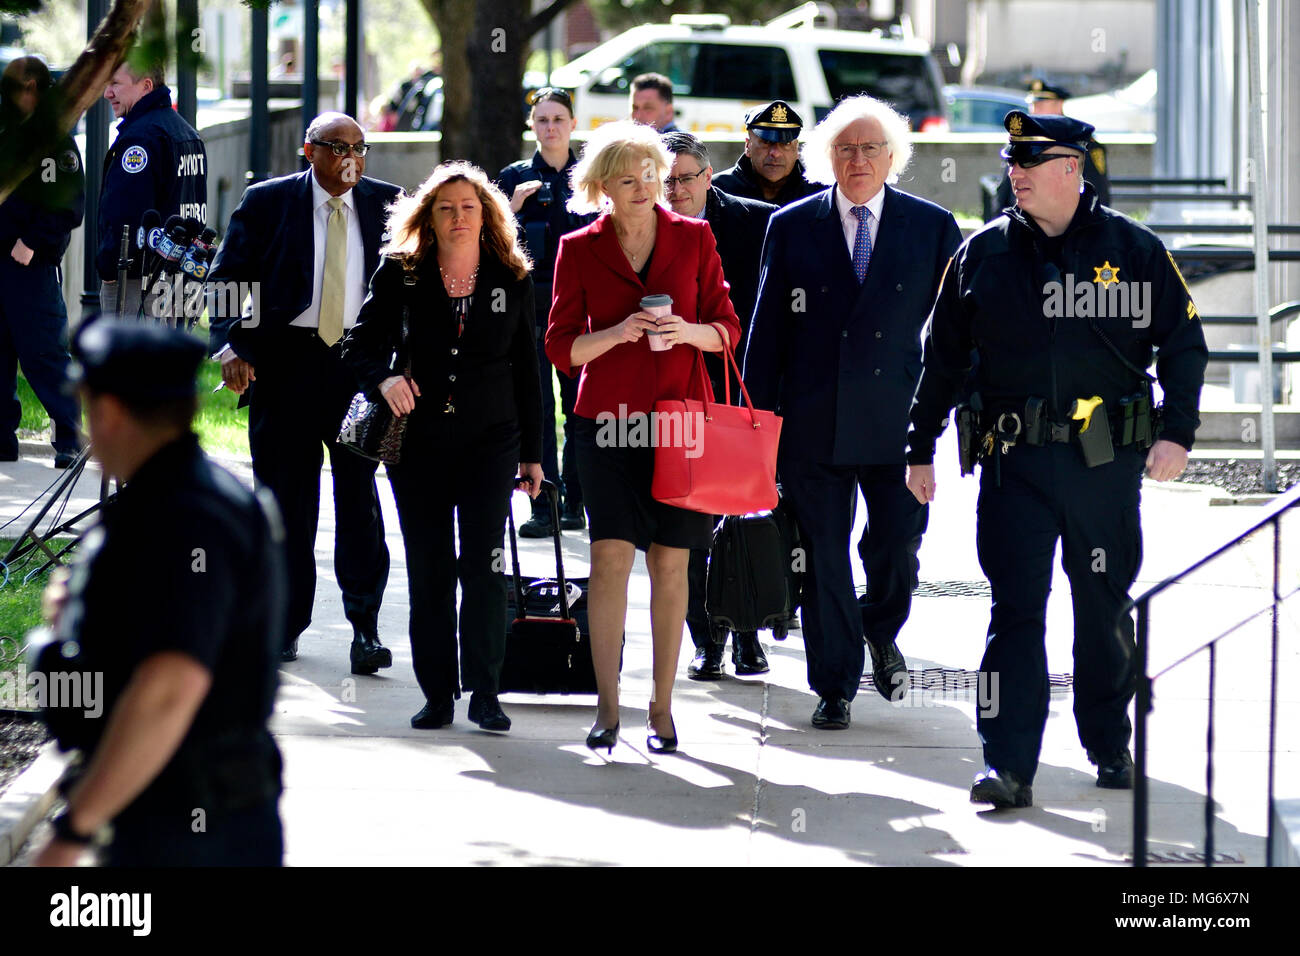 Norristown, USA. 26th Apr, 2018. Bill Cosby's legal defense team including lead attorneys Tom Mesereau and Kathleen Bliss arrive ahead of the sexual assault trail at Montgomery County Court House in Norristown, PA, USA, on April 26, 2018. Credit: Bastiaan Slabbers/Alamy Live News - Stock Image